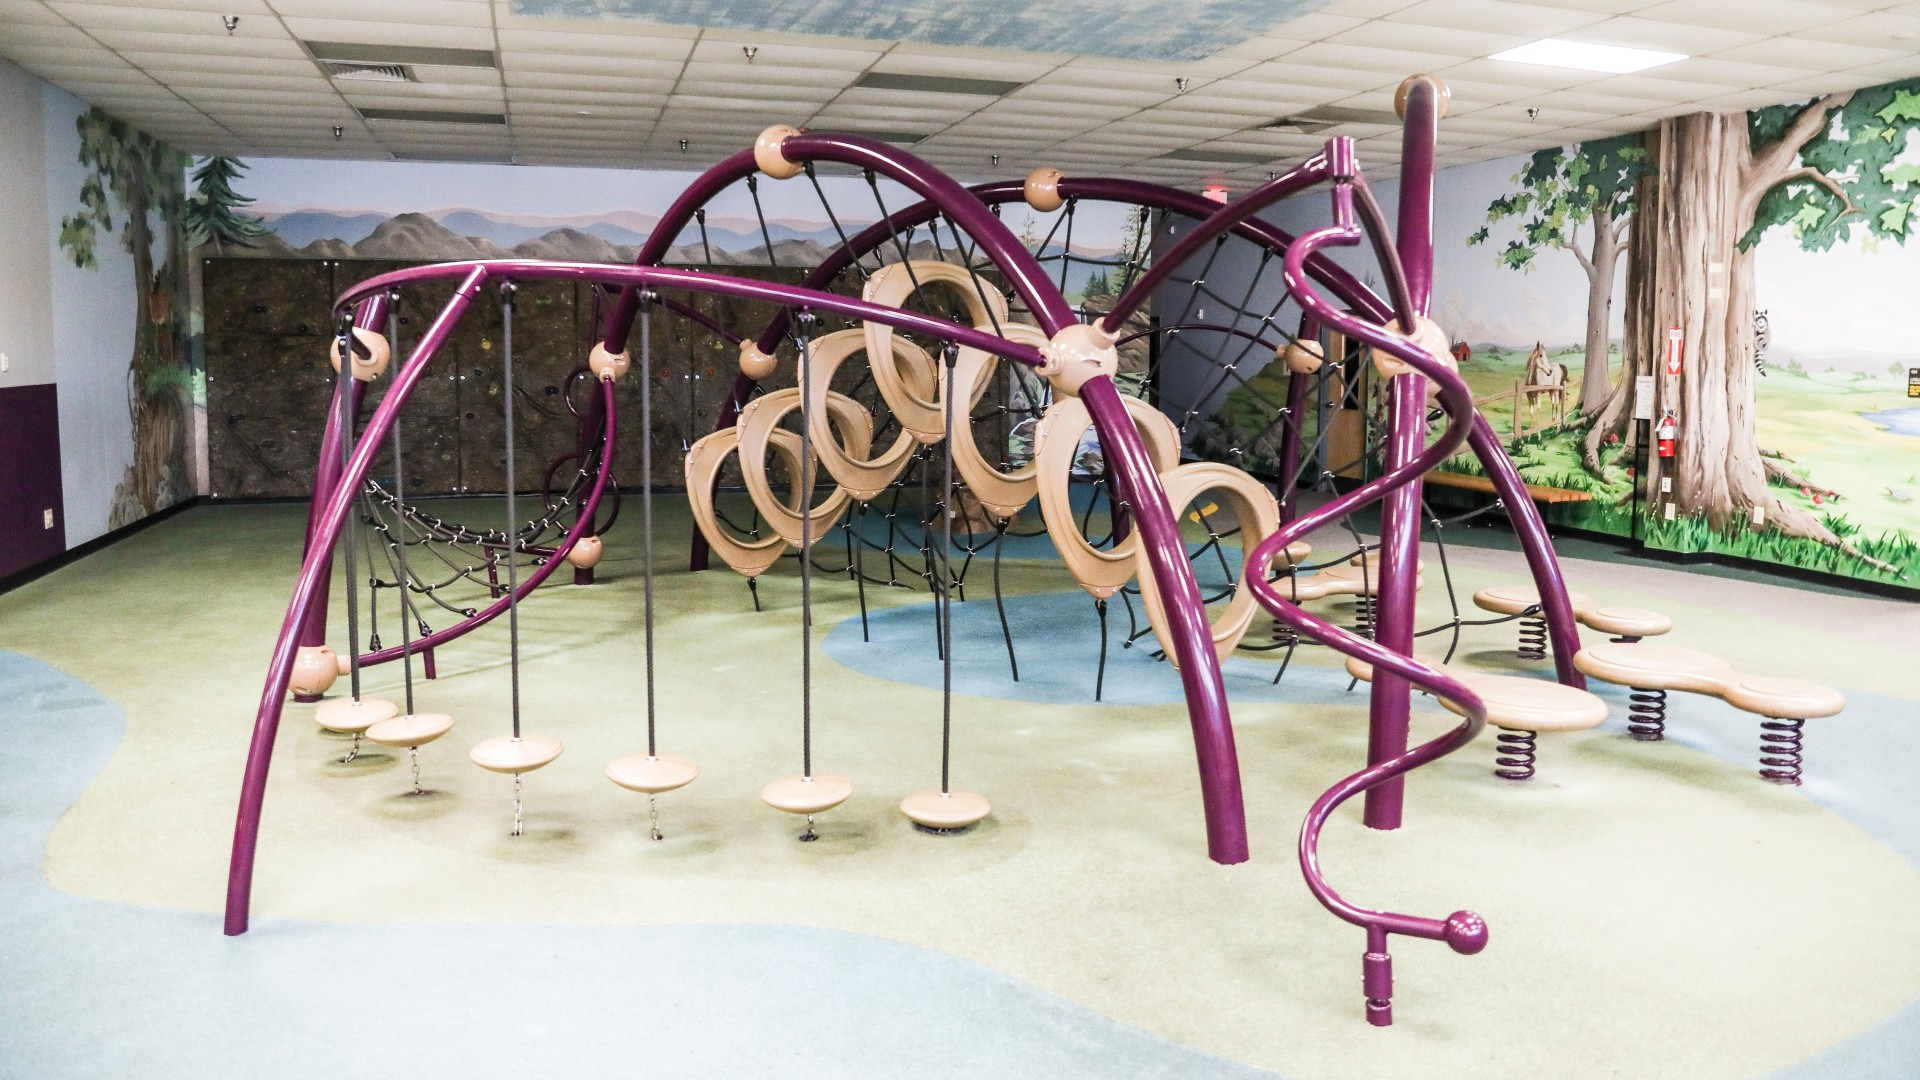 An indoor playground with climbing equipment and more